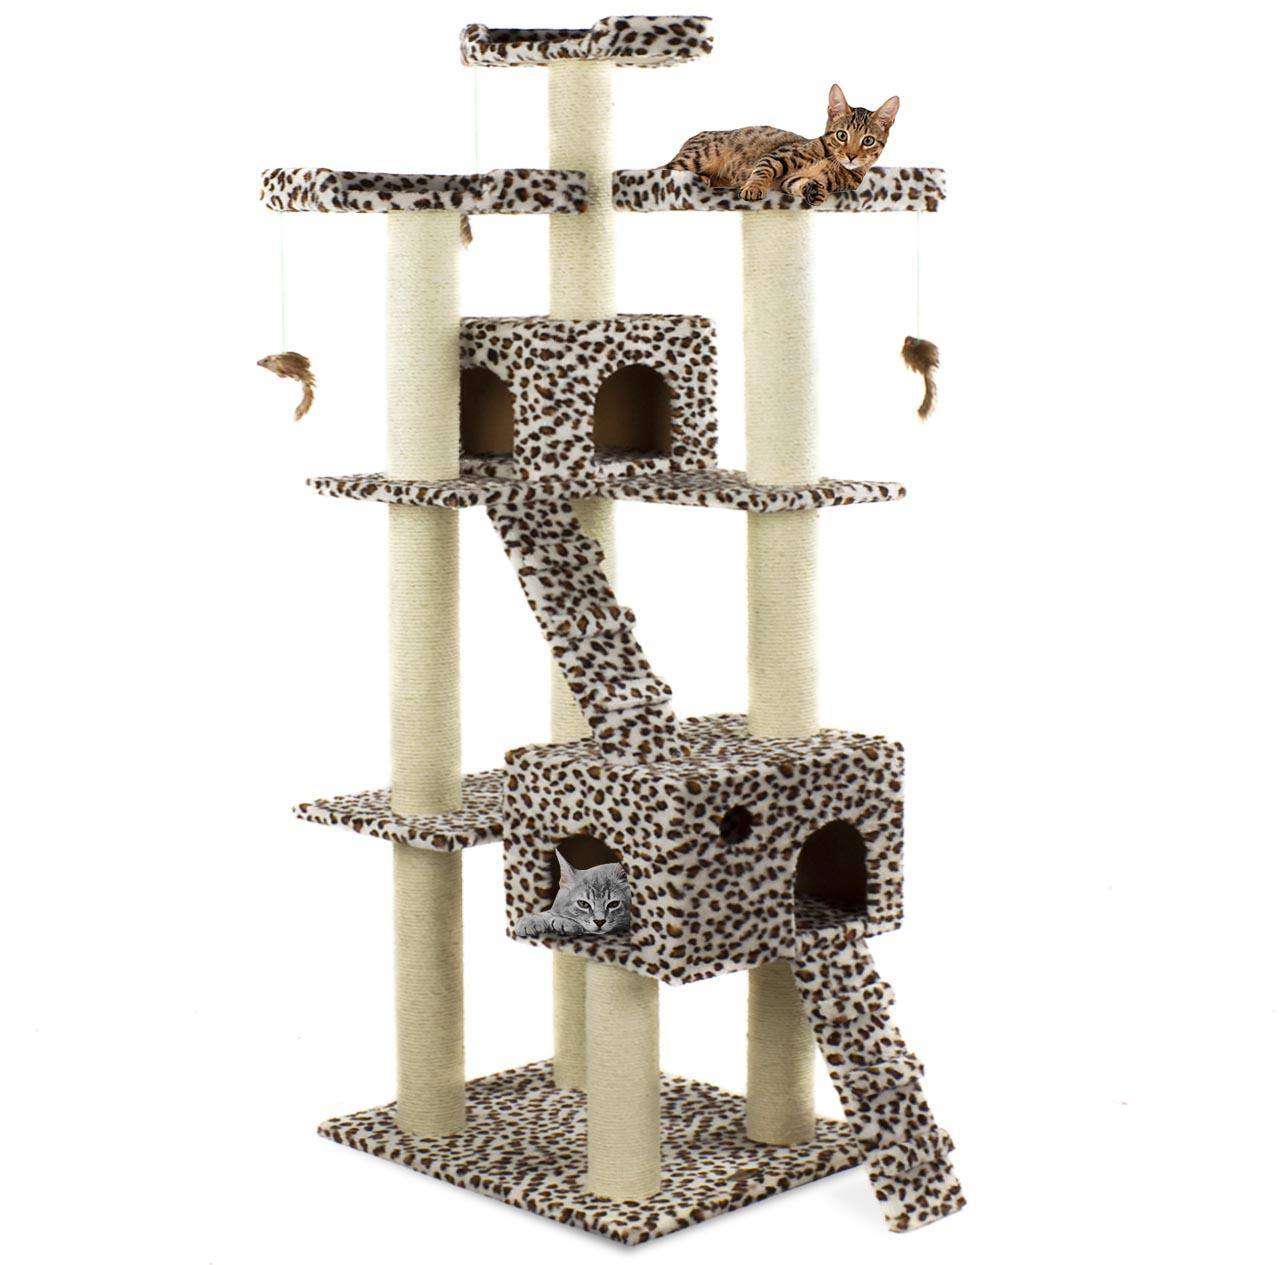 arbre chat griffoir grattoir 182m diverses couleurs happypet cat002 neuf ebay. Black Bedroom Furniture Sets. Home Design Ideas